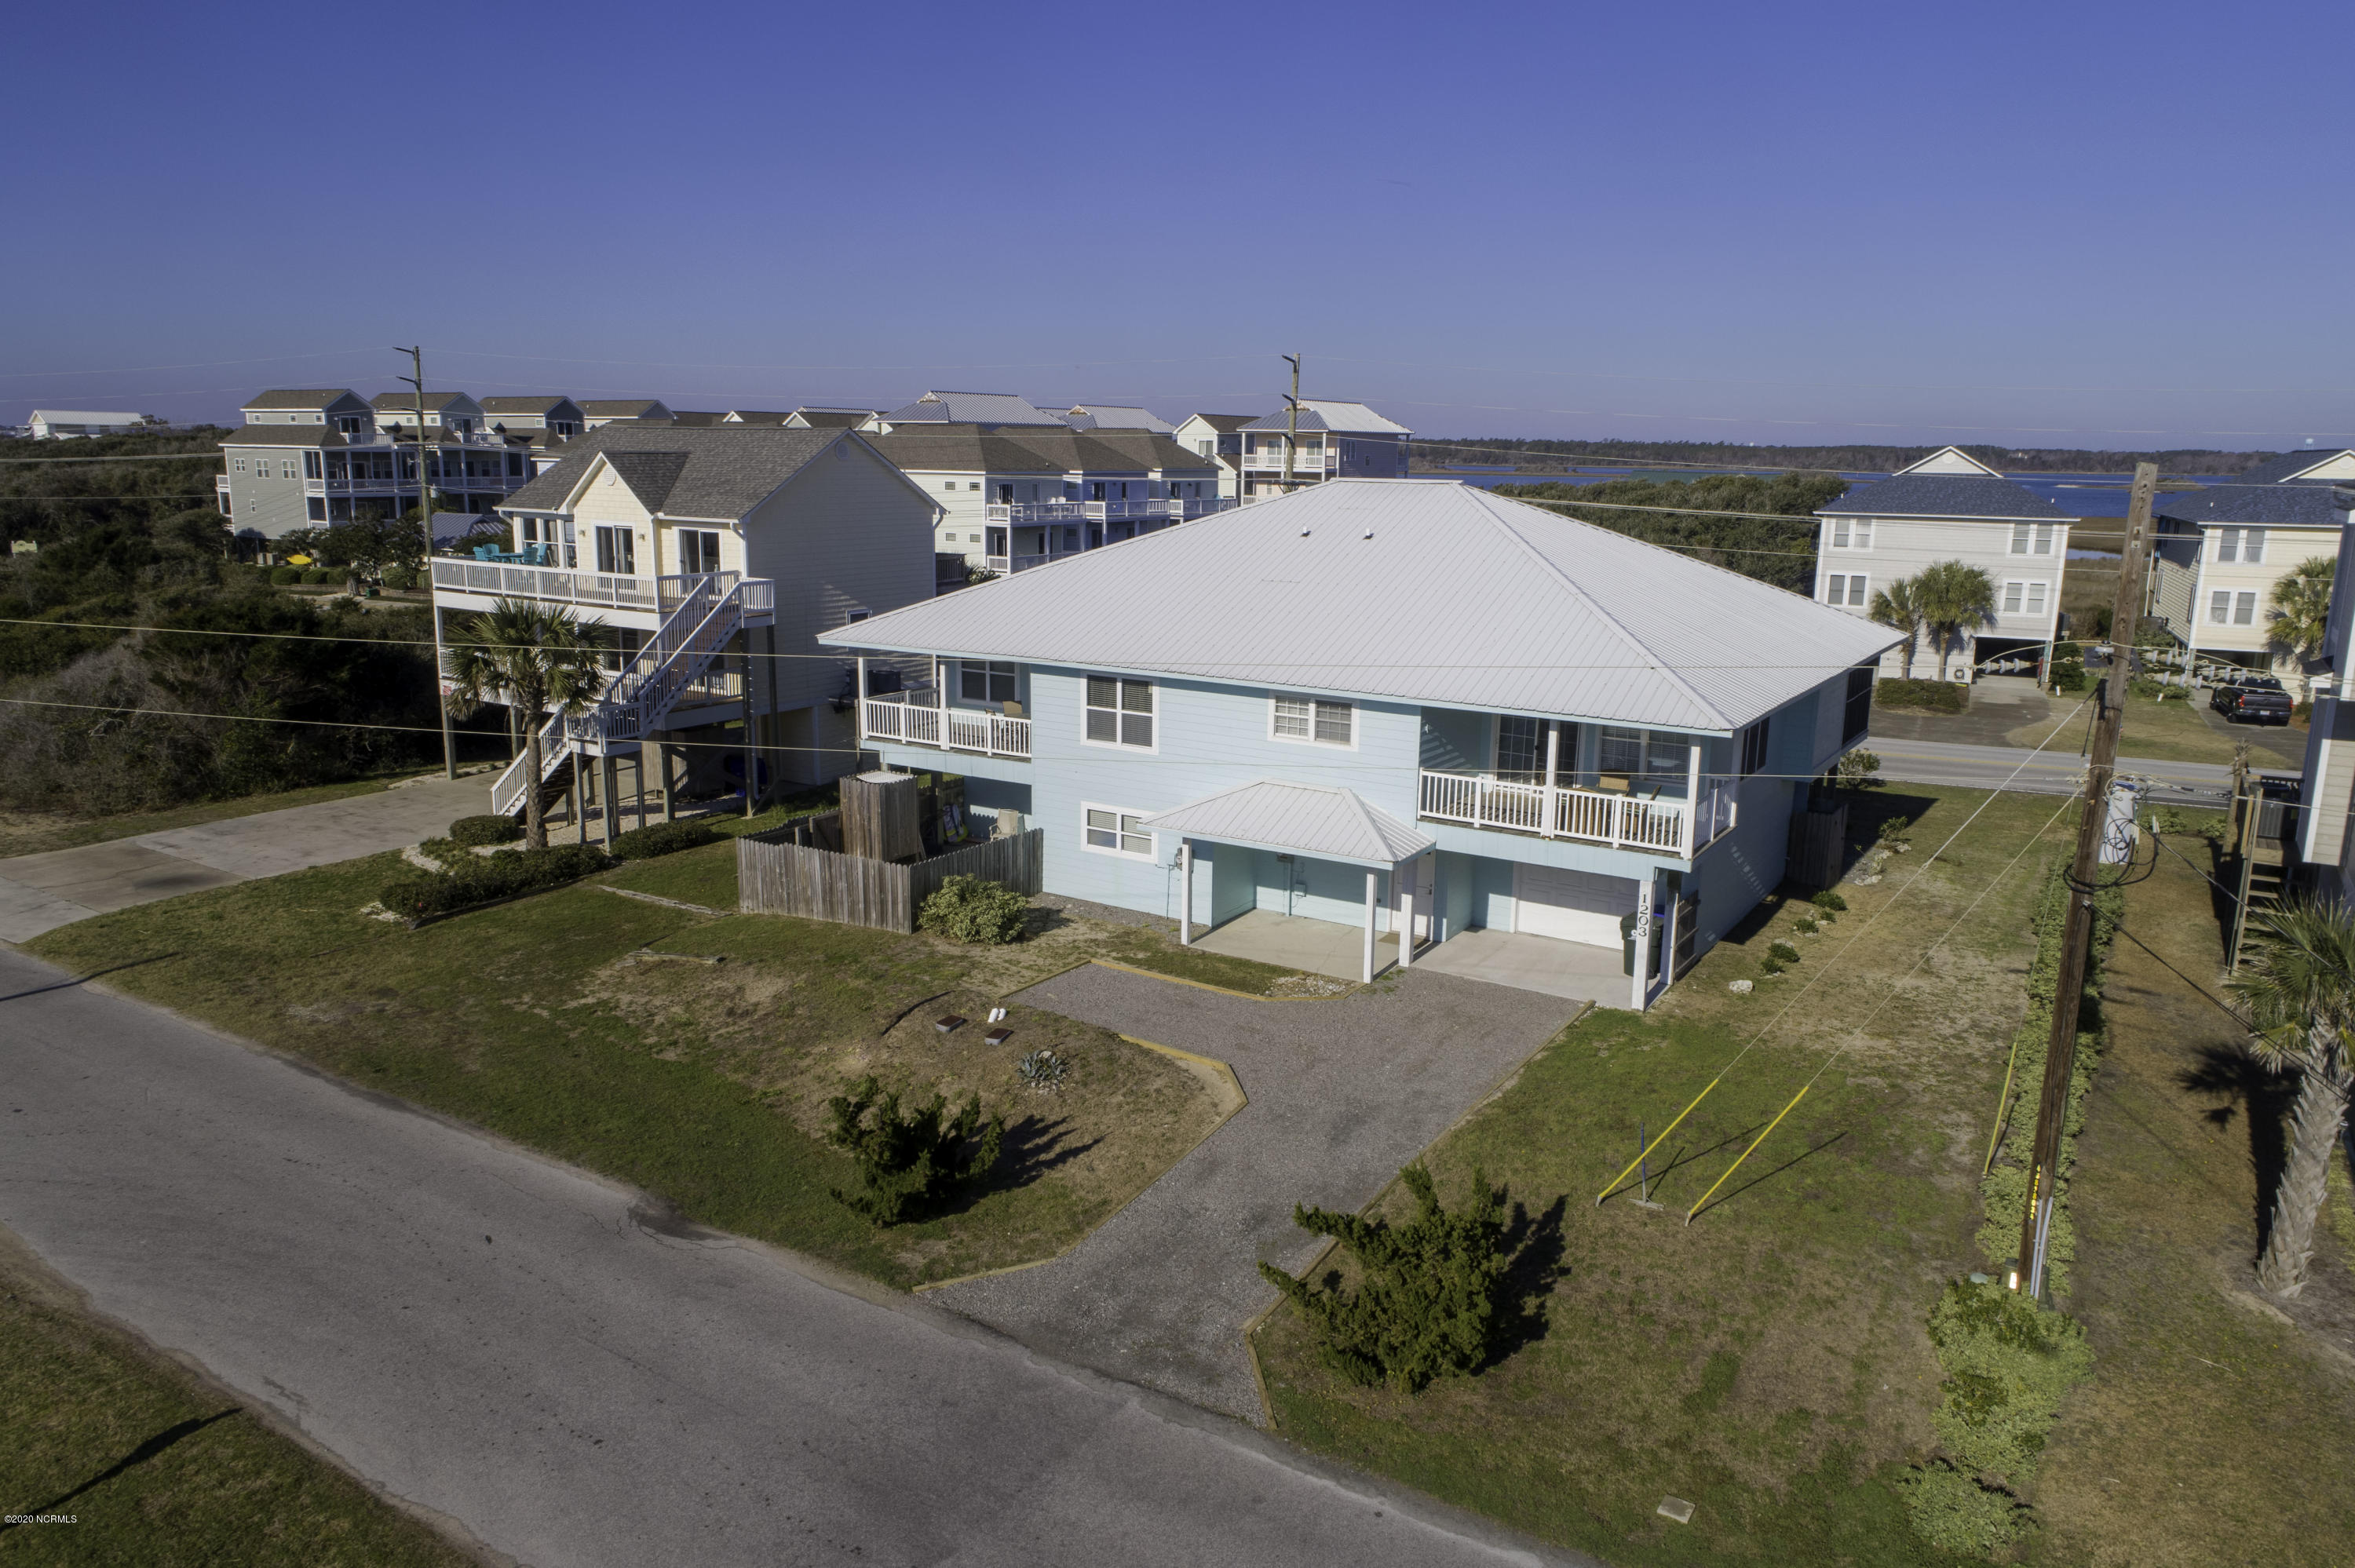 1202/1203 S Topsail / S Shore Drive, Surf City, North Carolina 28445, 8 Bedrooms Bedrooms, 14 Rooms Rooms,1 BathroomBathrooms,Townhouse,For sale,S Topsail / S Shore,100200187